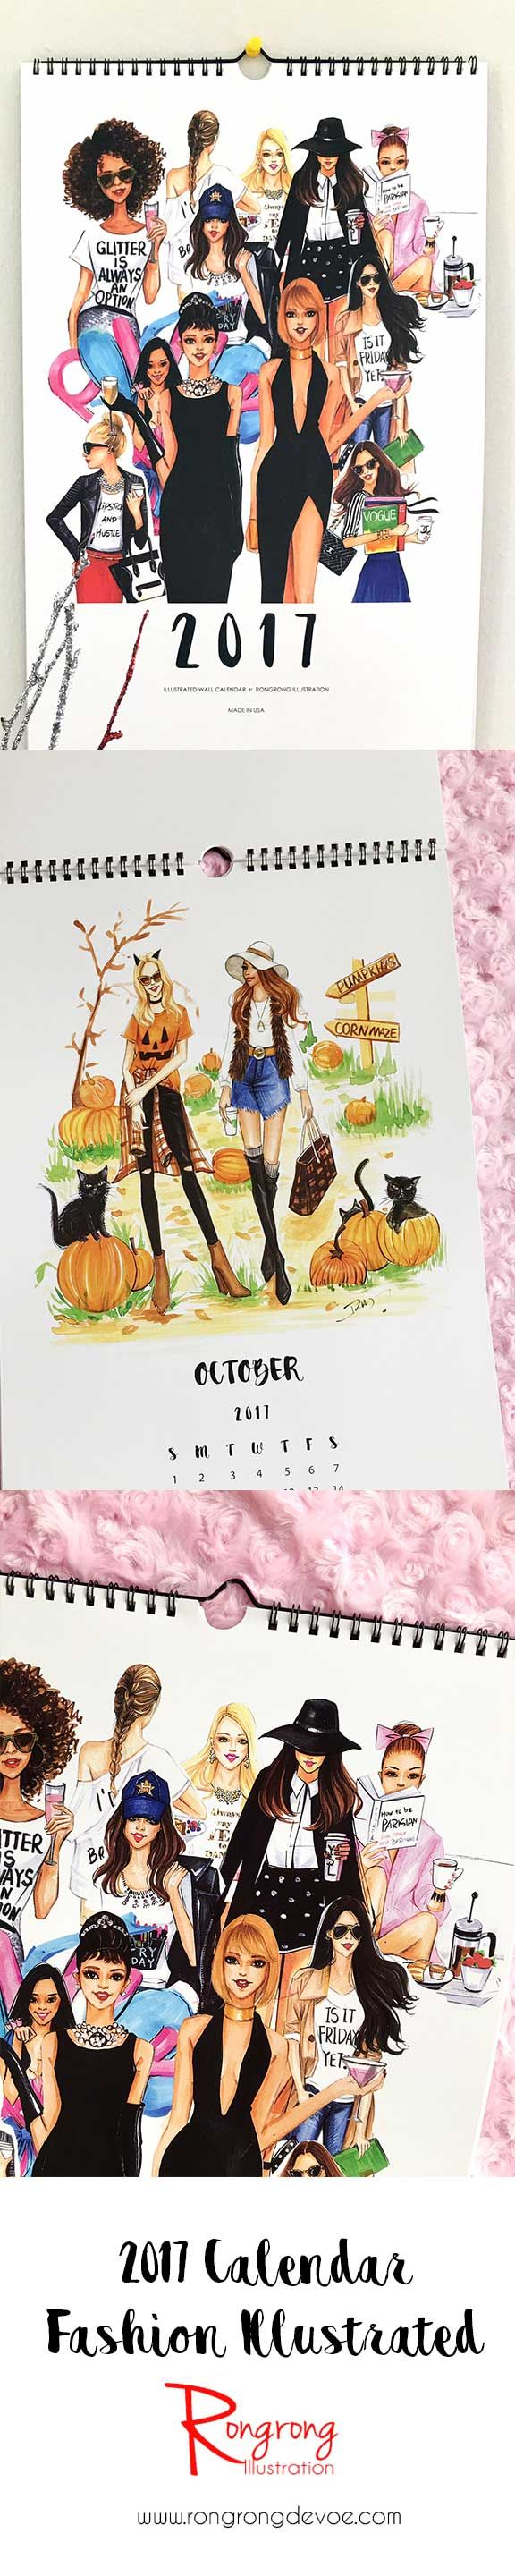 2017 Calendar,Wall Calender,Fashion Illustration,Fashion illustration Calendar,Fashion Calendar,Fashion art,Fashion wall art,Fashion poster